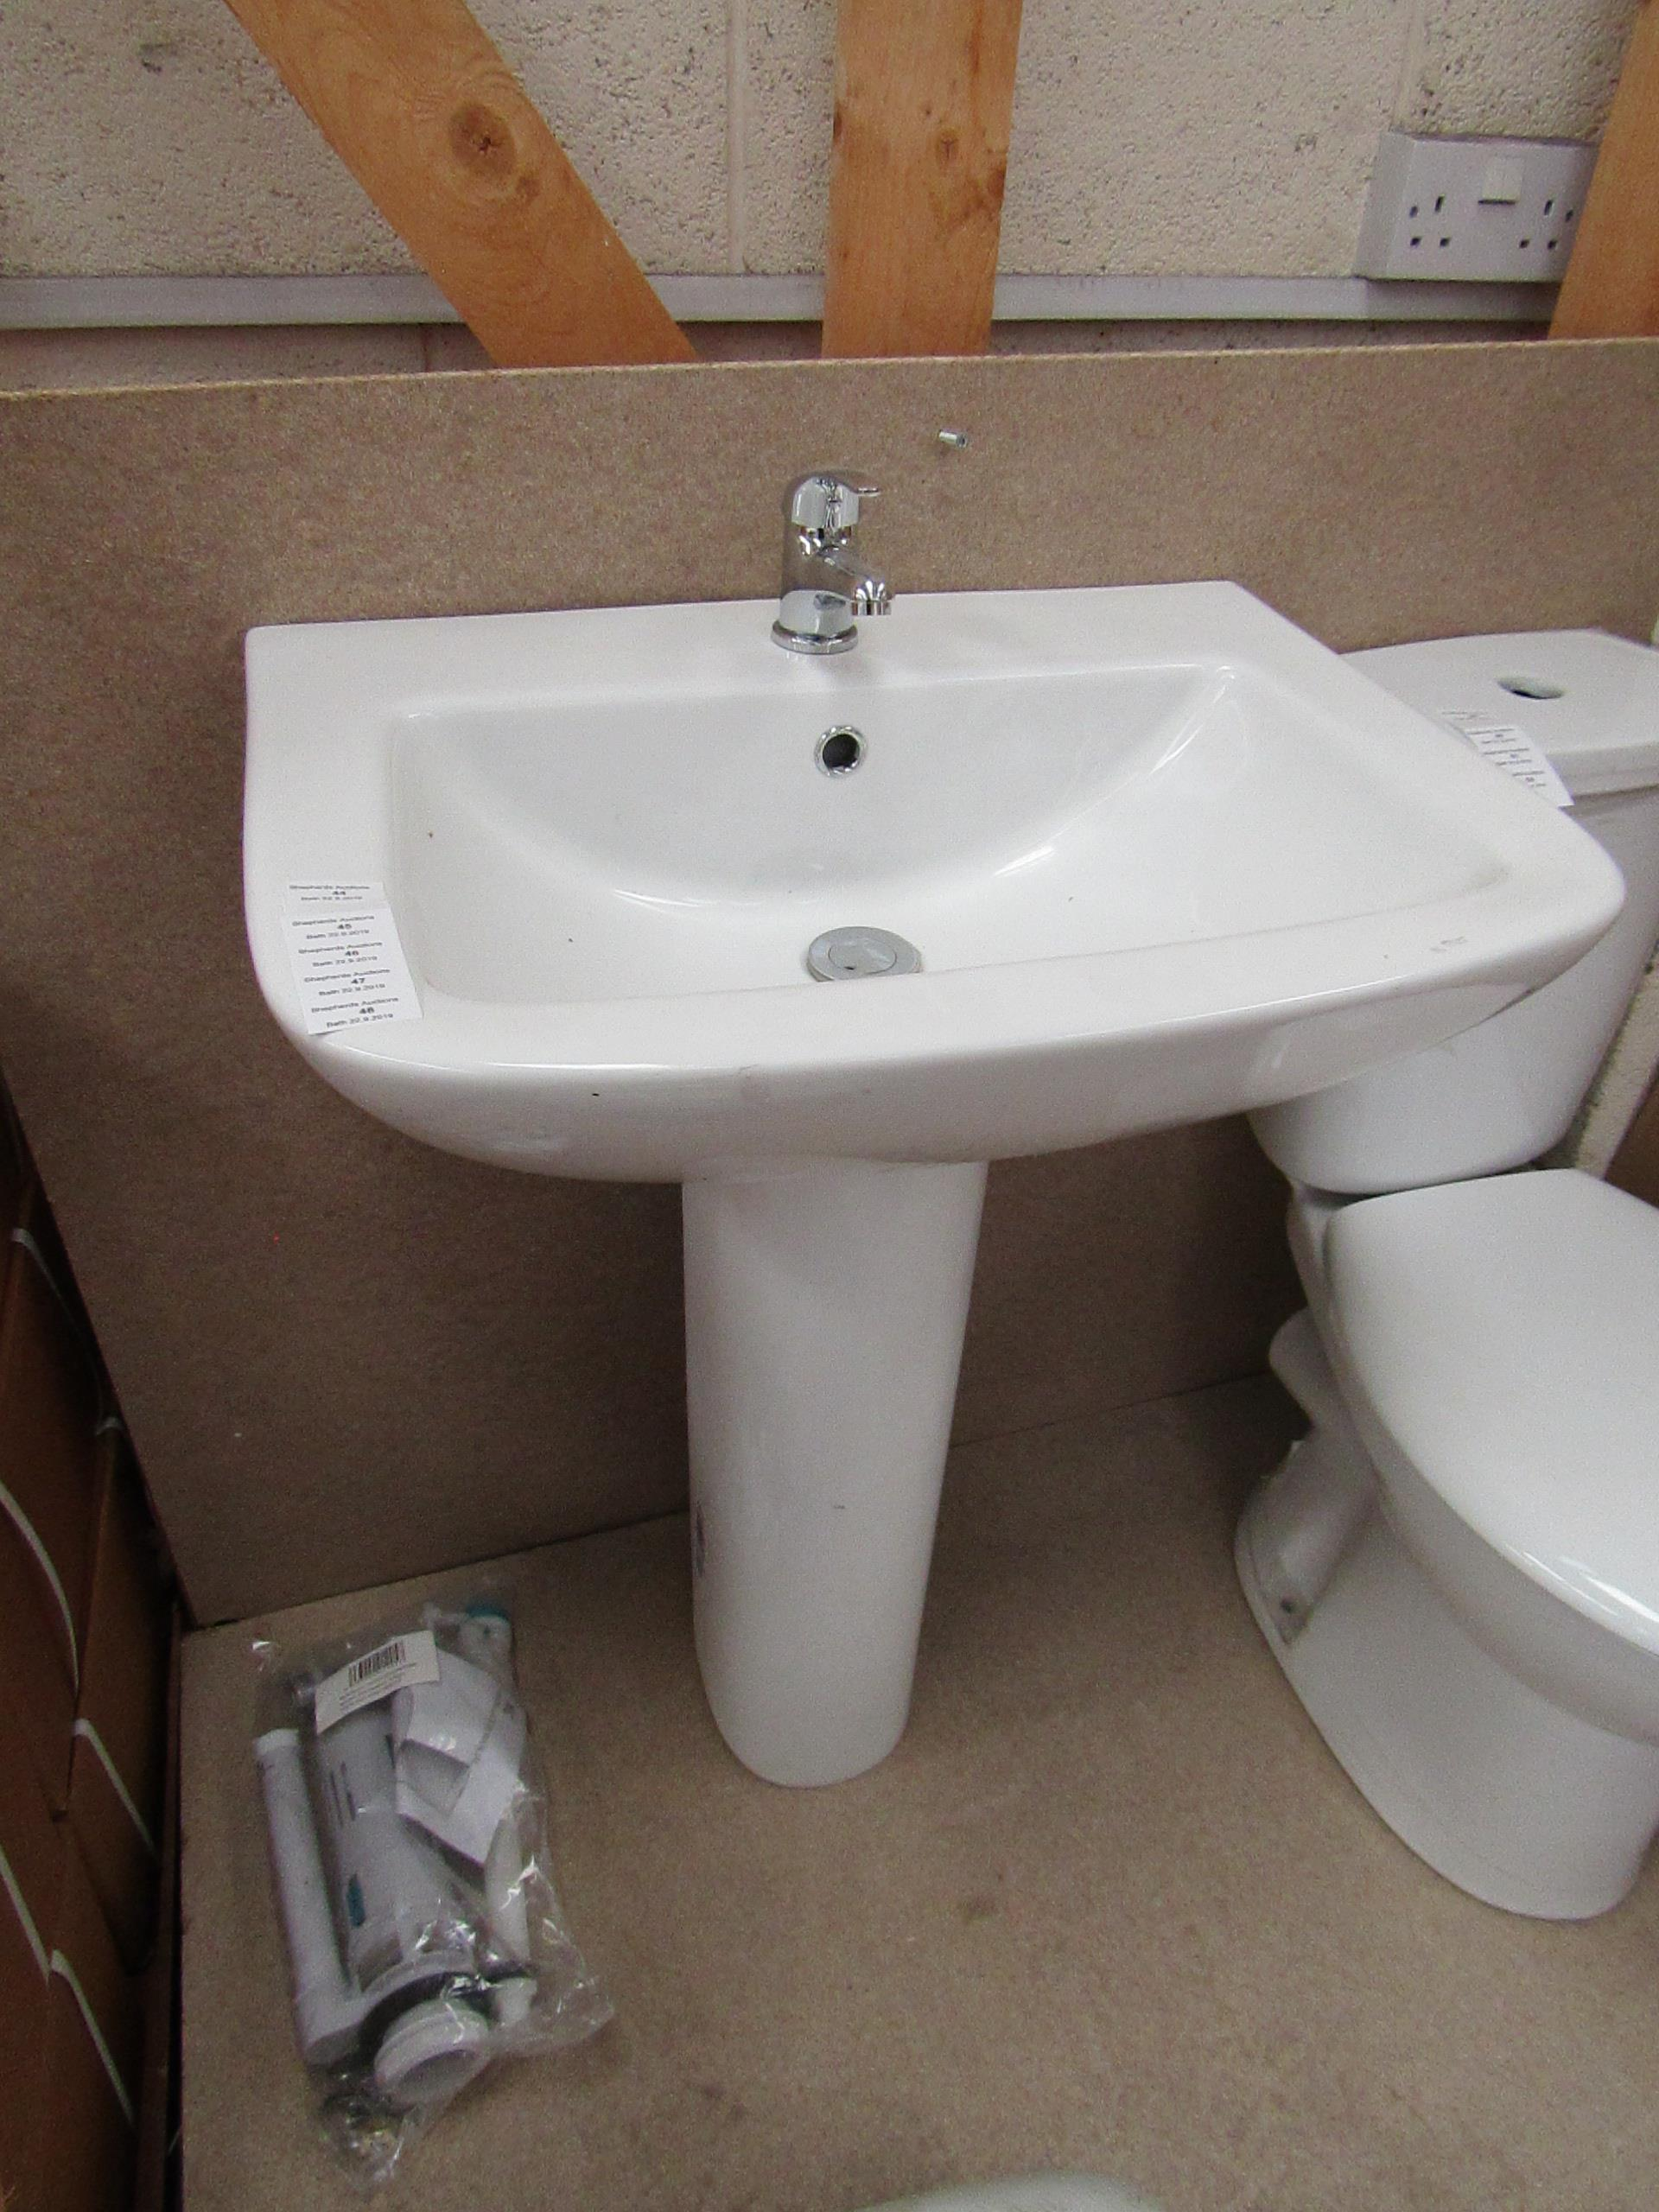 Lot 48 - Unbranded Roca Cloakroom basin set that includes a 620mm 1 tap hole sink with full pedestal and a